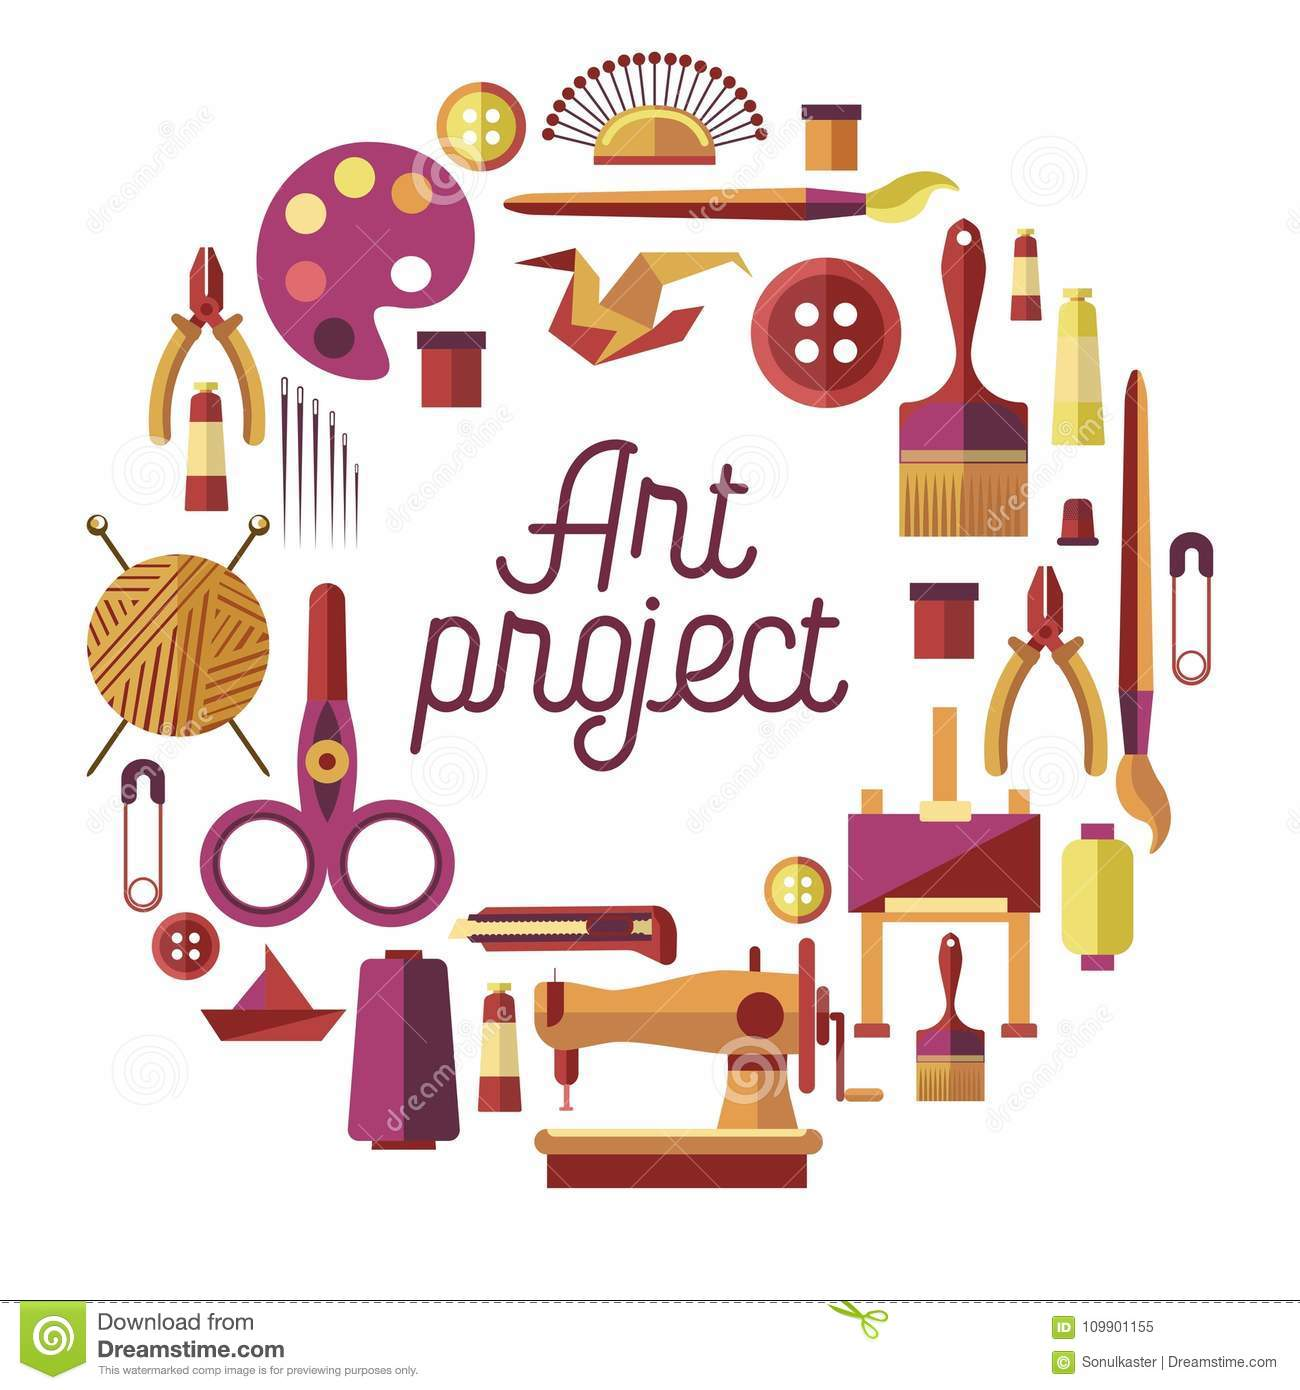 Creative Art Project Vector Poster For Diy Handicraft And Handmade